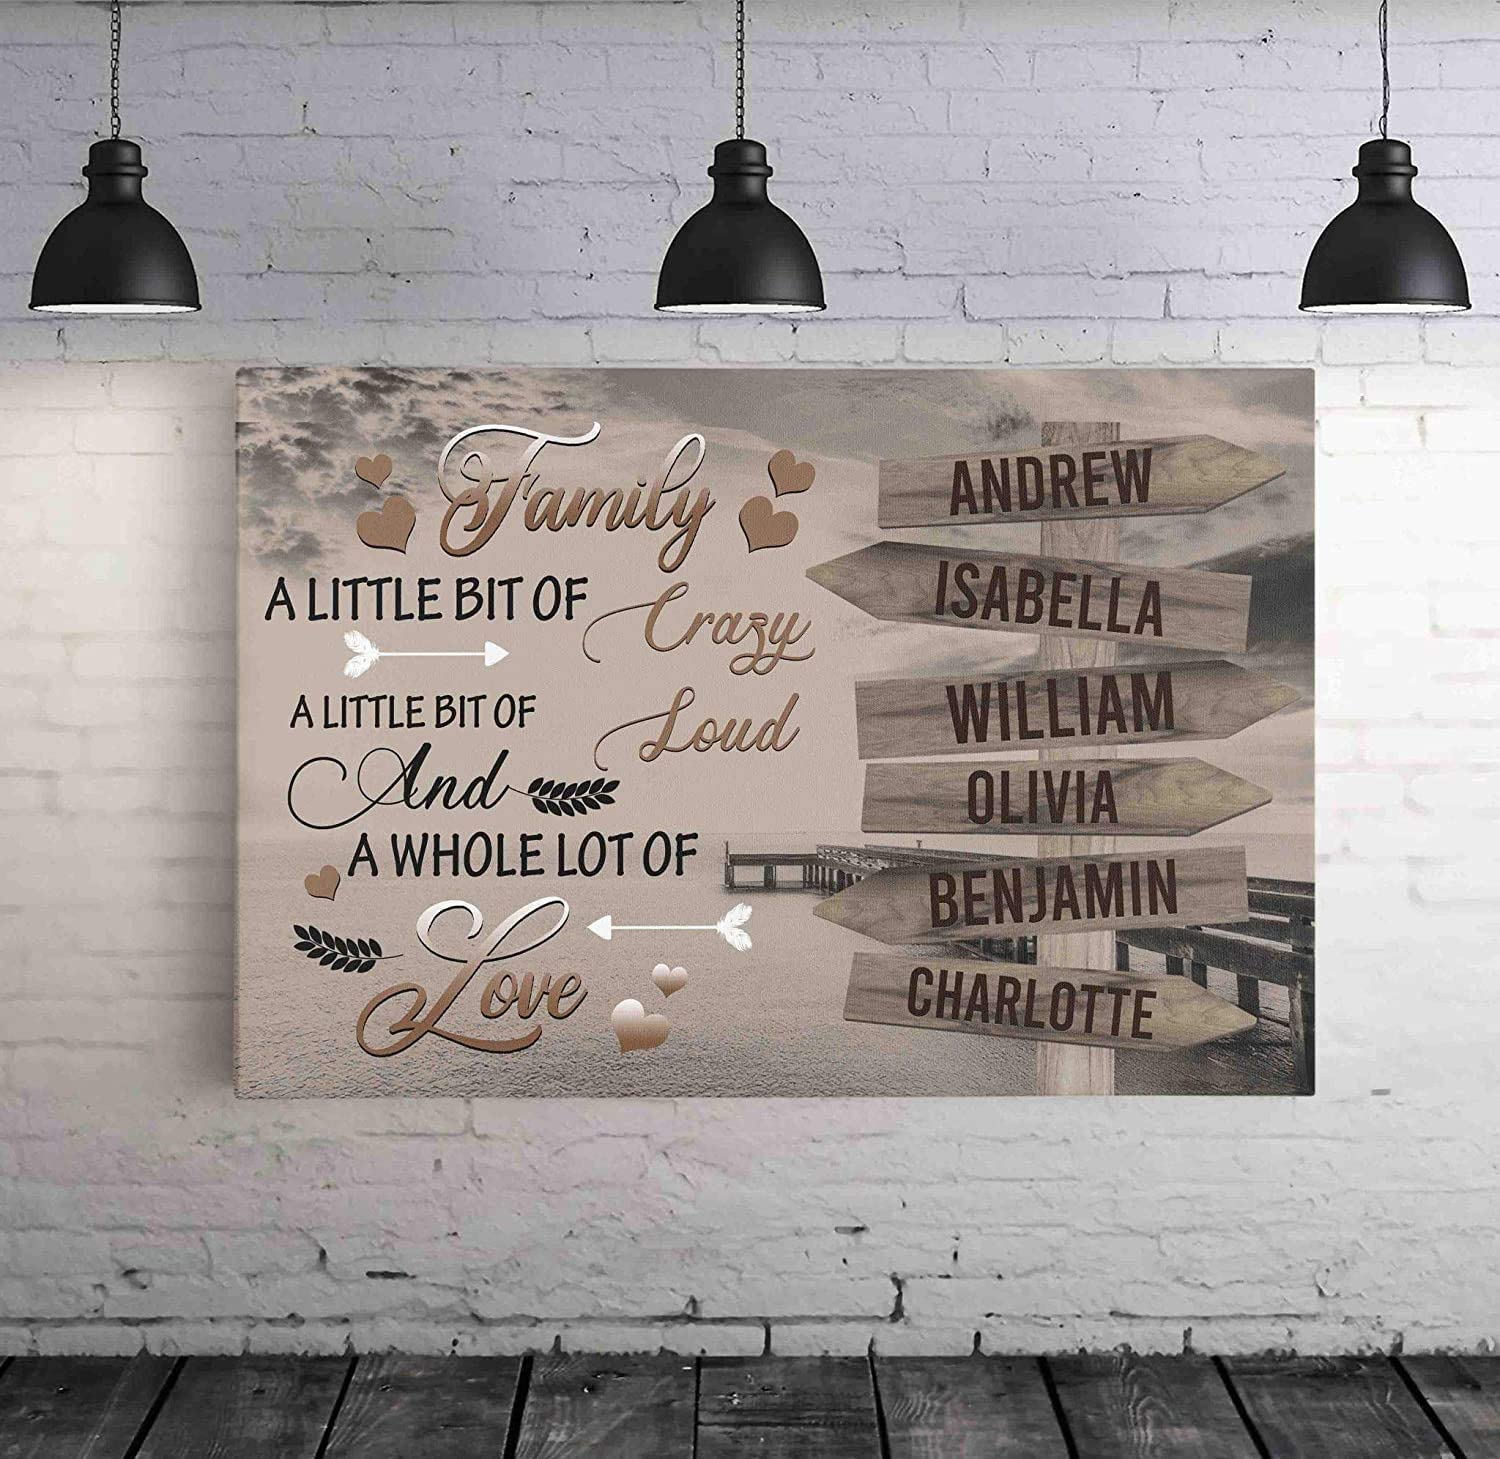 Personalized Street Sign Multi Name Canvas Poster Print Ocean Dock Quotes Family A little Bit Of Crazy Horizontal Poster Hang Wall Home Decor No Frame or Canvas 0.75 Inch Frame Gifts for Mothers Day